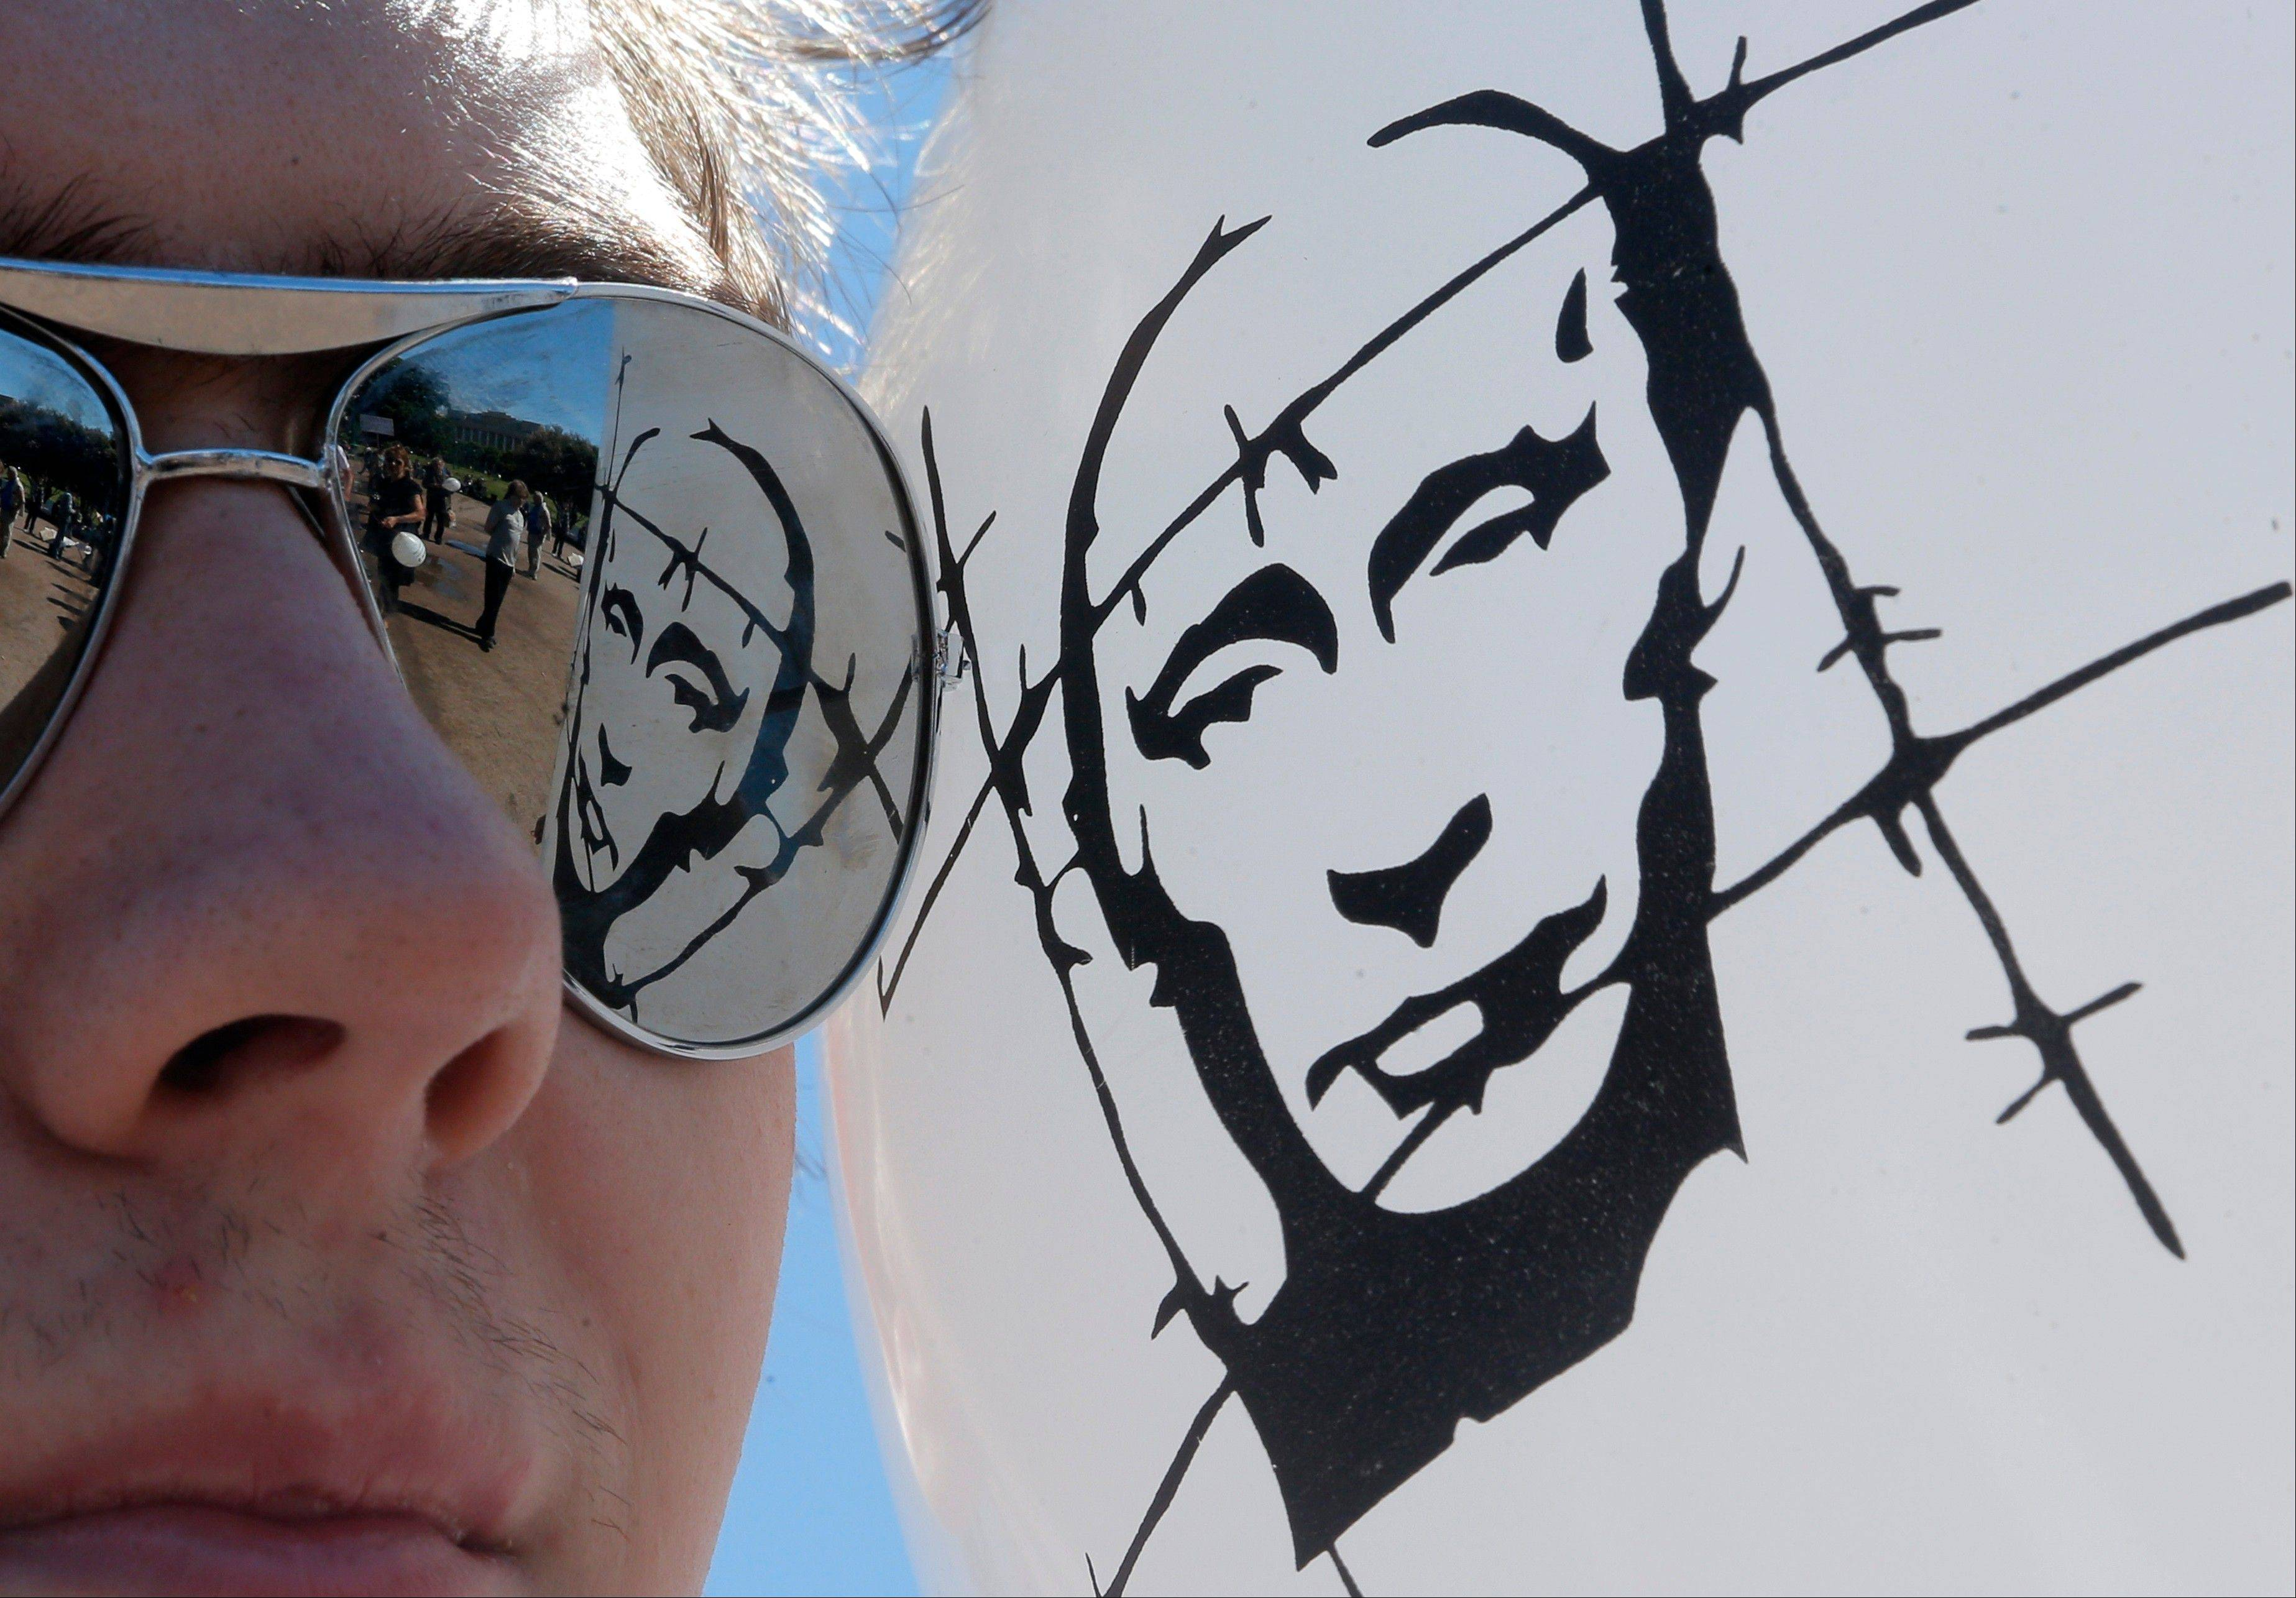 A balloon depicting Russian President Vladimir Putin behind barbed wire, reflects in glasses of an opposition protester during a protest rally in St. Petersburg, Russia, Wednesday, June 12, 2013. Wednesday's rally is in support of 27 people who face charges related to a protest that turned violent on the eve of Putin's inauguration more than a year ago.